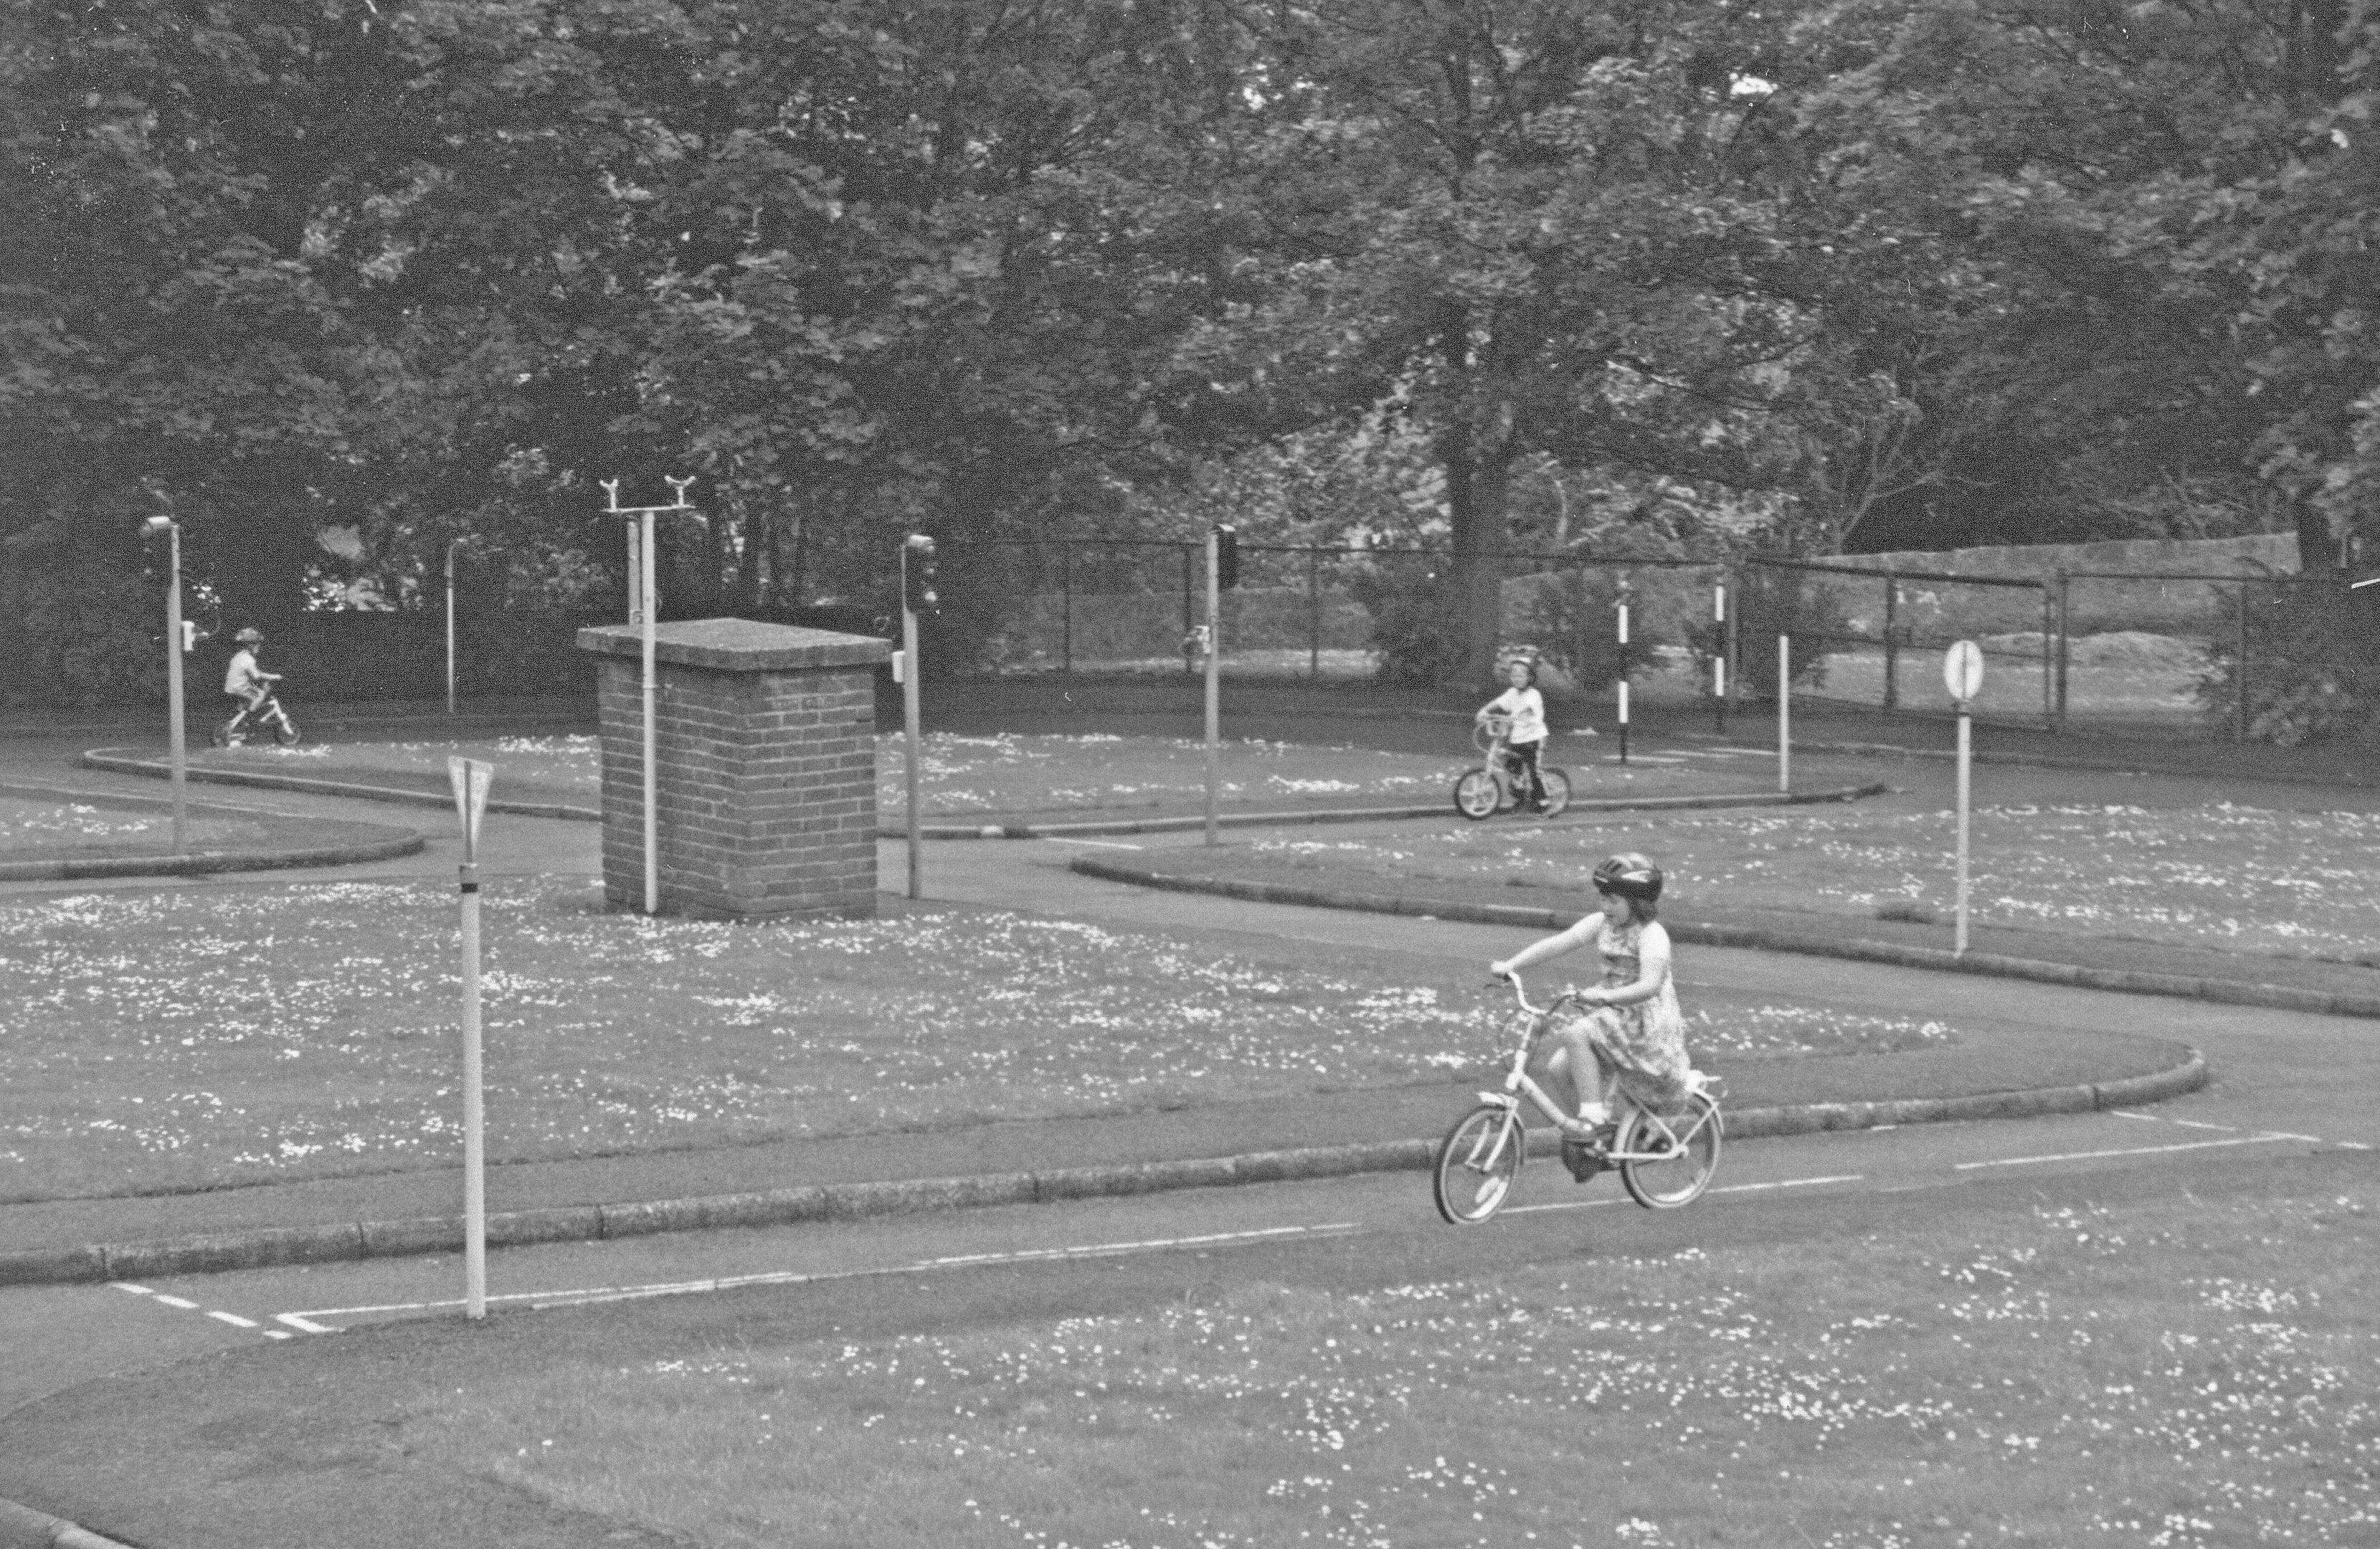 An area with a 'Road Layout' on which children could be given instruction on Road Safety was provided in Pittencrieff Park in 1950.